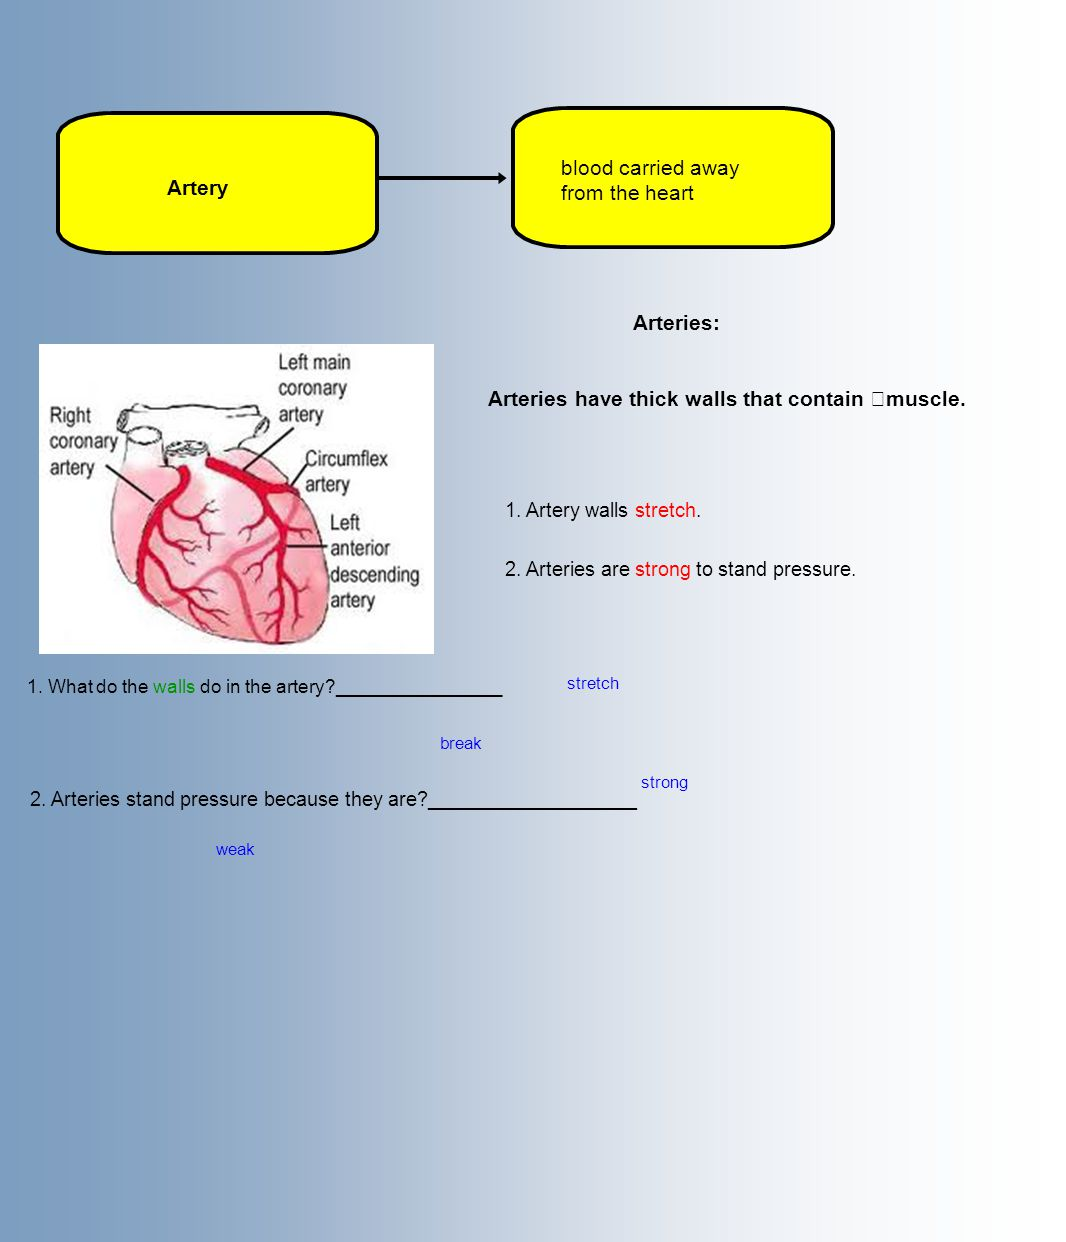 Artery blood carried away from the heart Arteries: Arteries have thick walls that contain muscle.